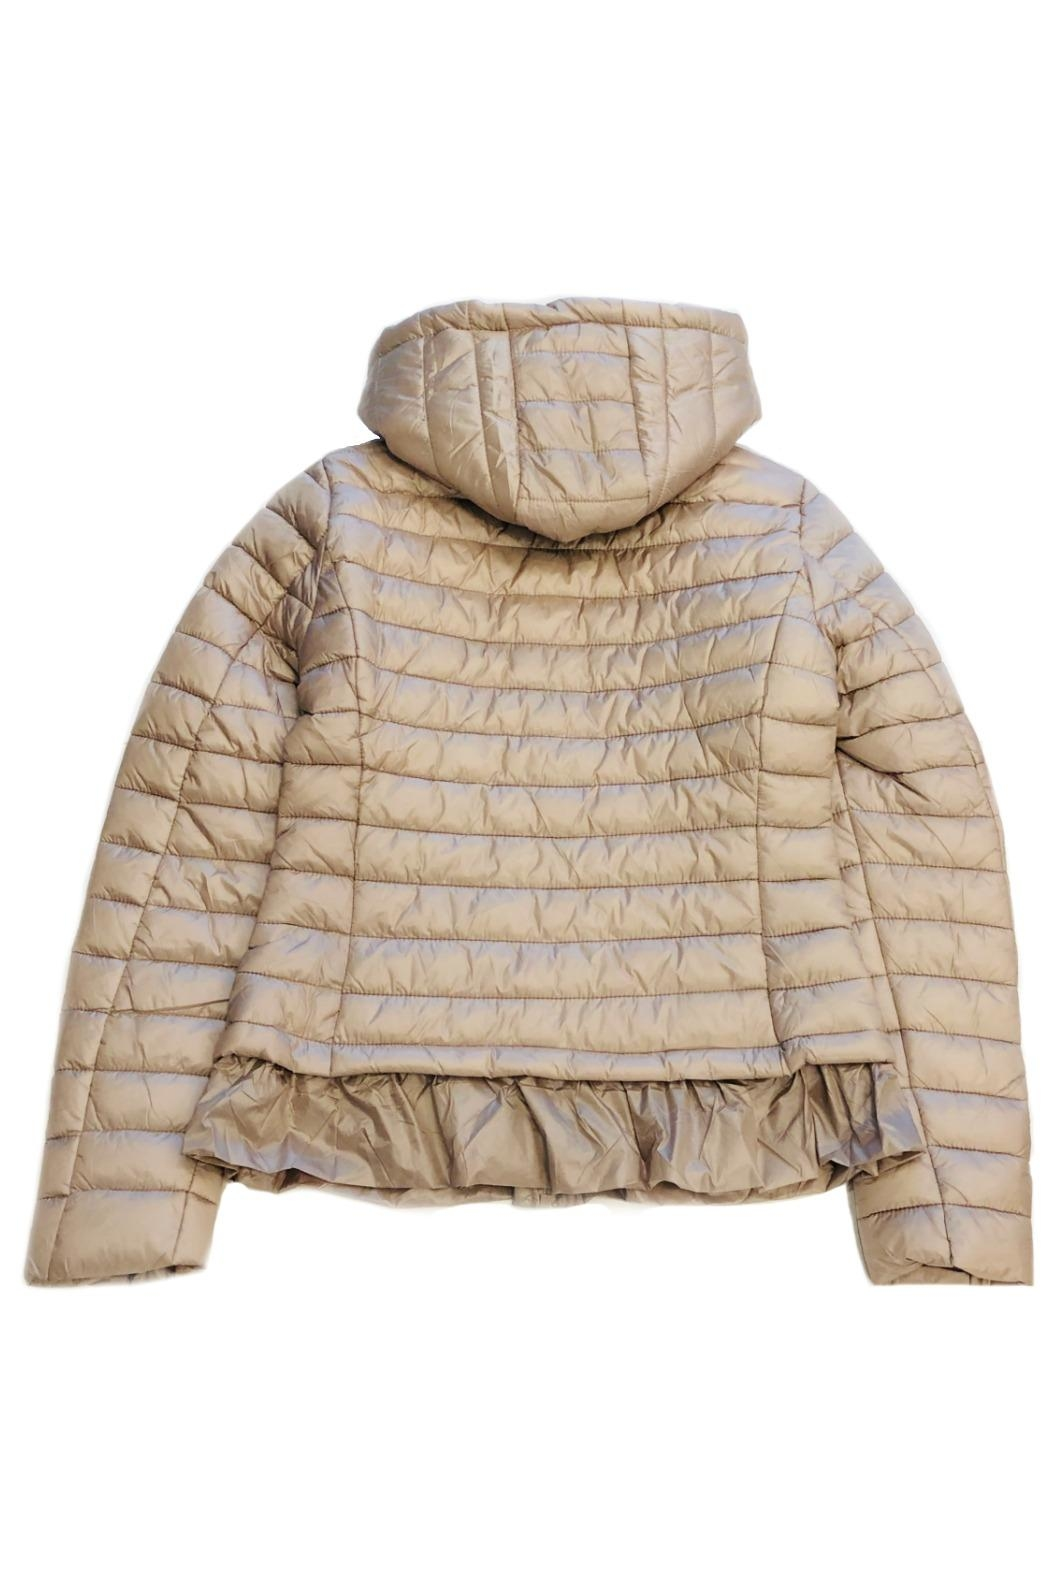 ANTONELLO SERIO Puffer Jacket - Side Cropped Image